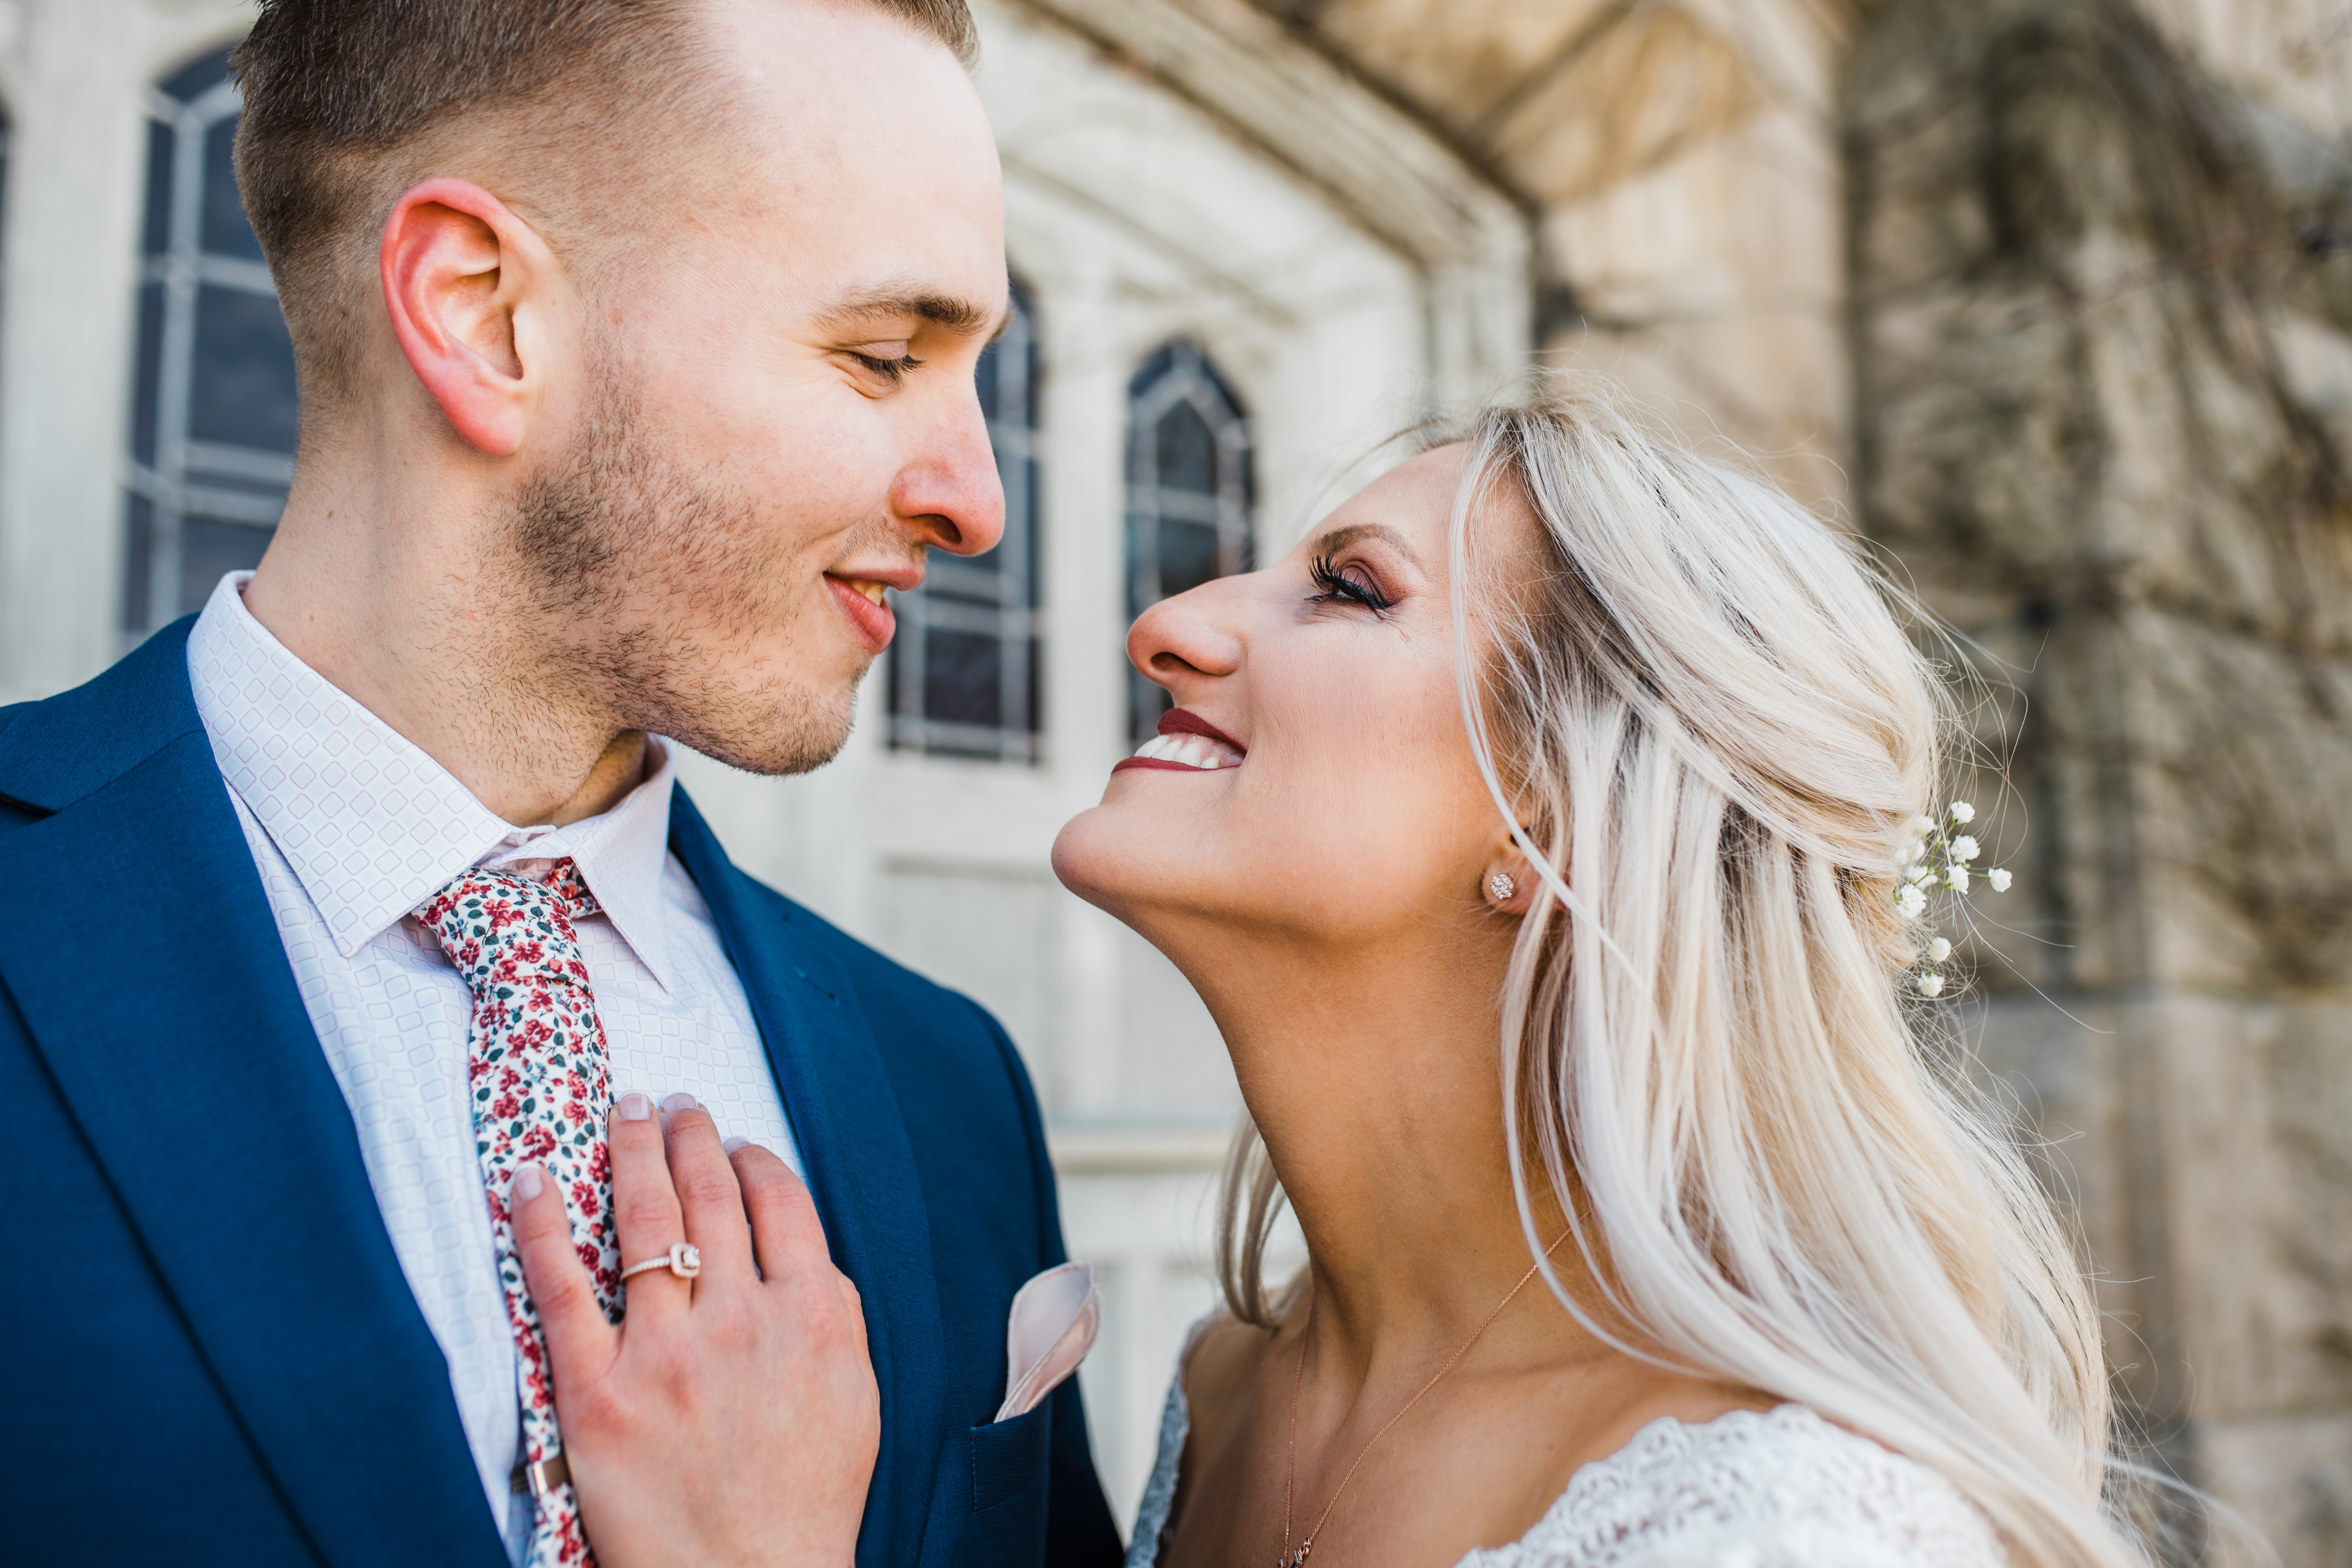 Easterday Creative | Adventurous wedding photographer and storyteller | Five Tips on How to Choose the Perfect Wedding Photographer